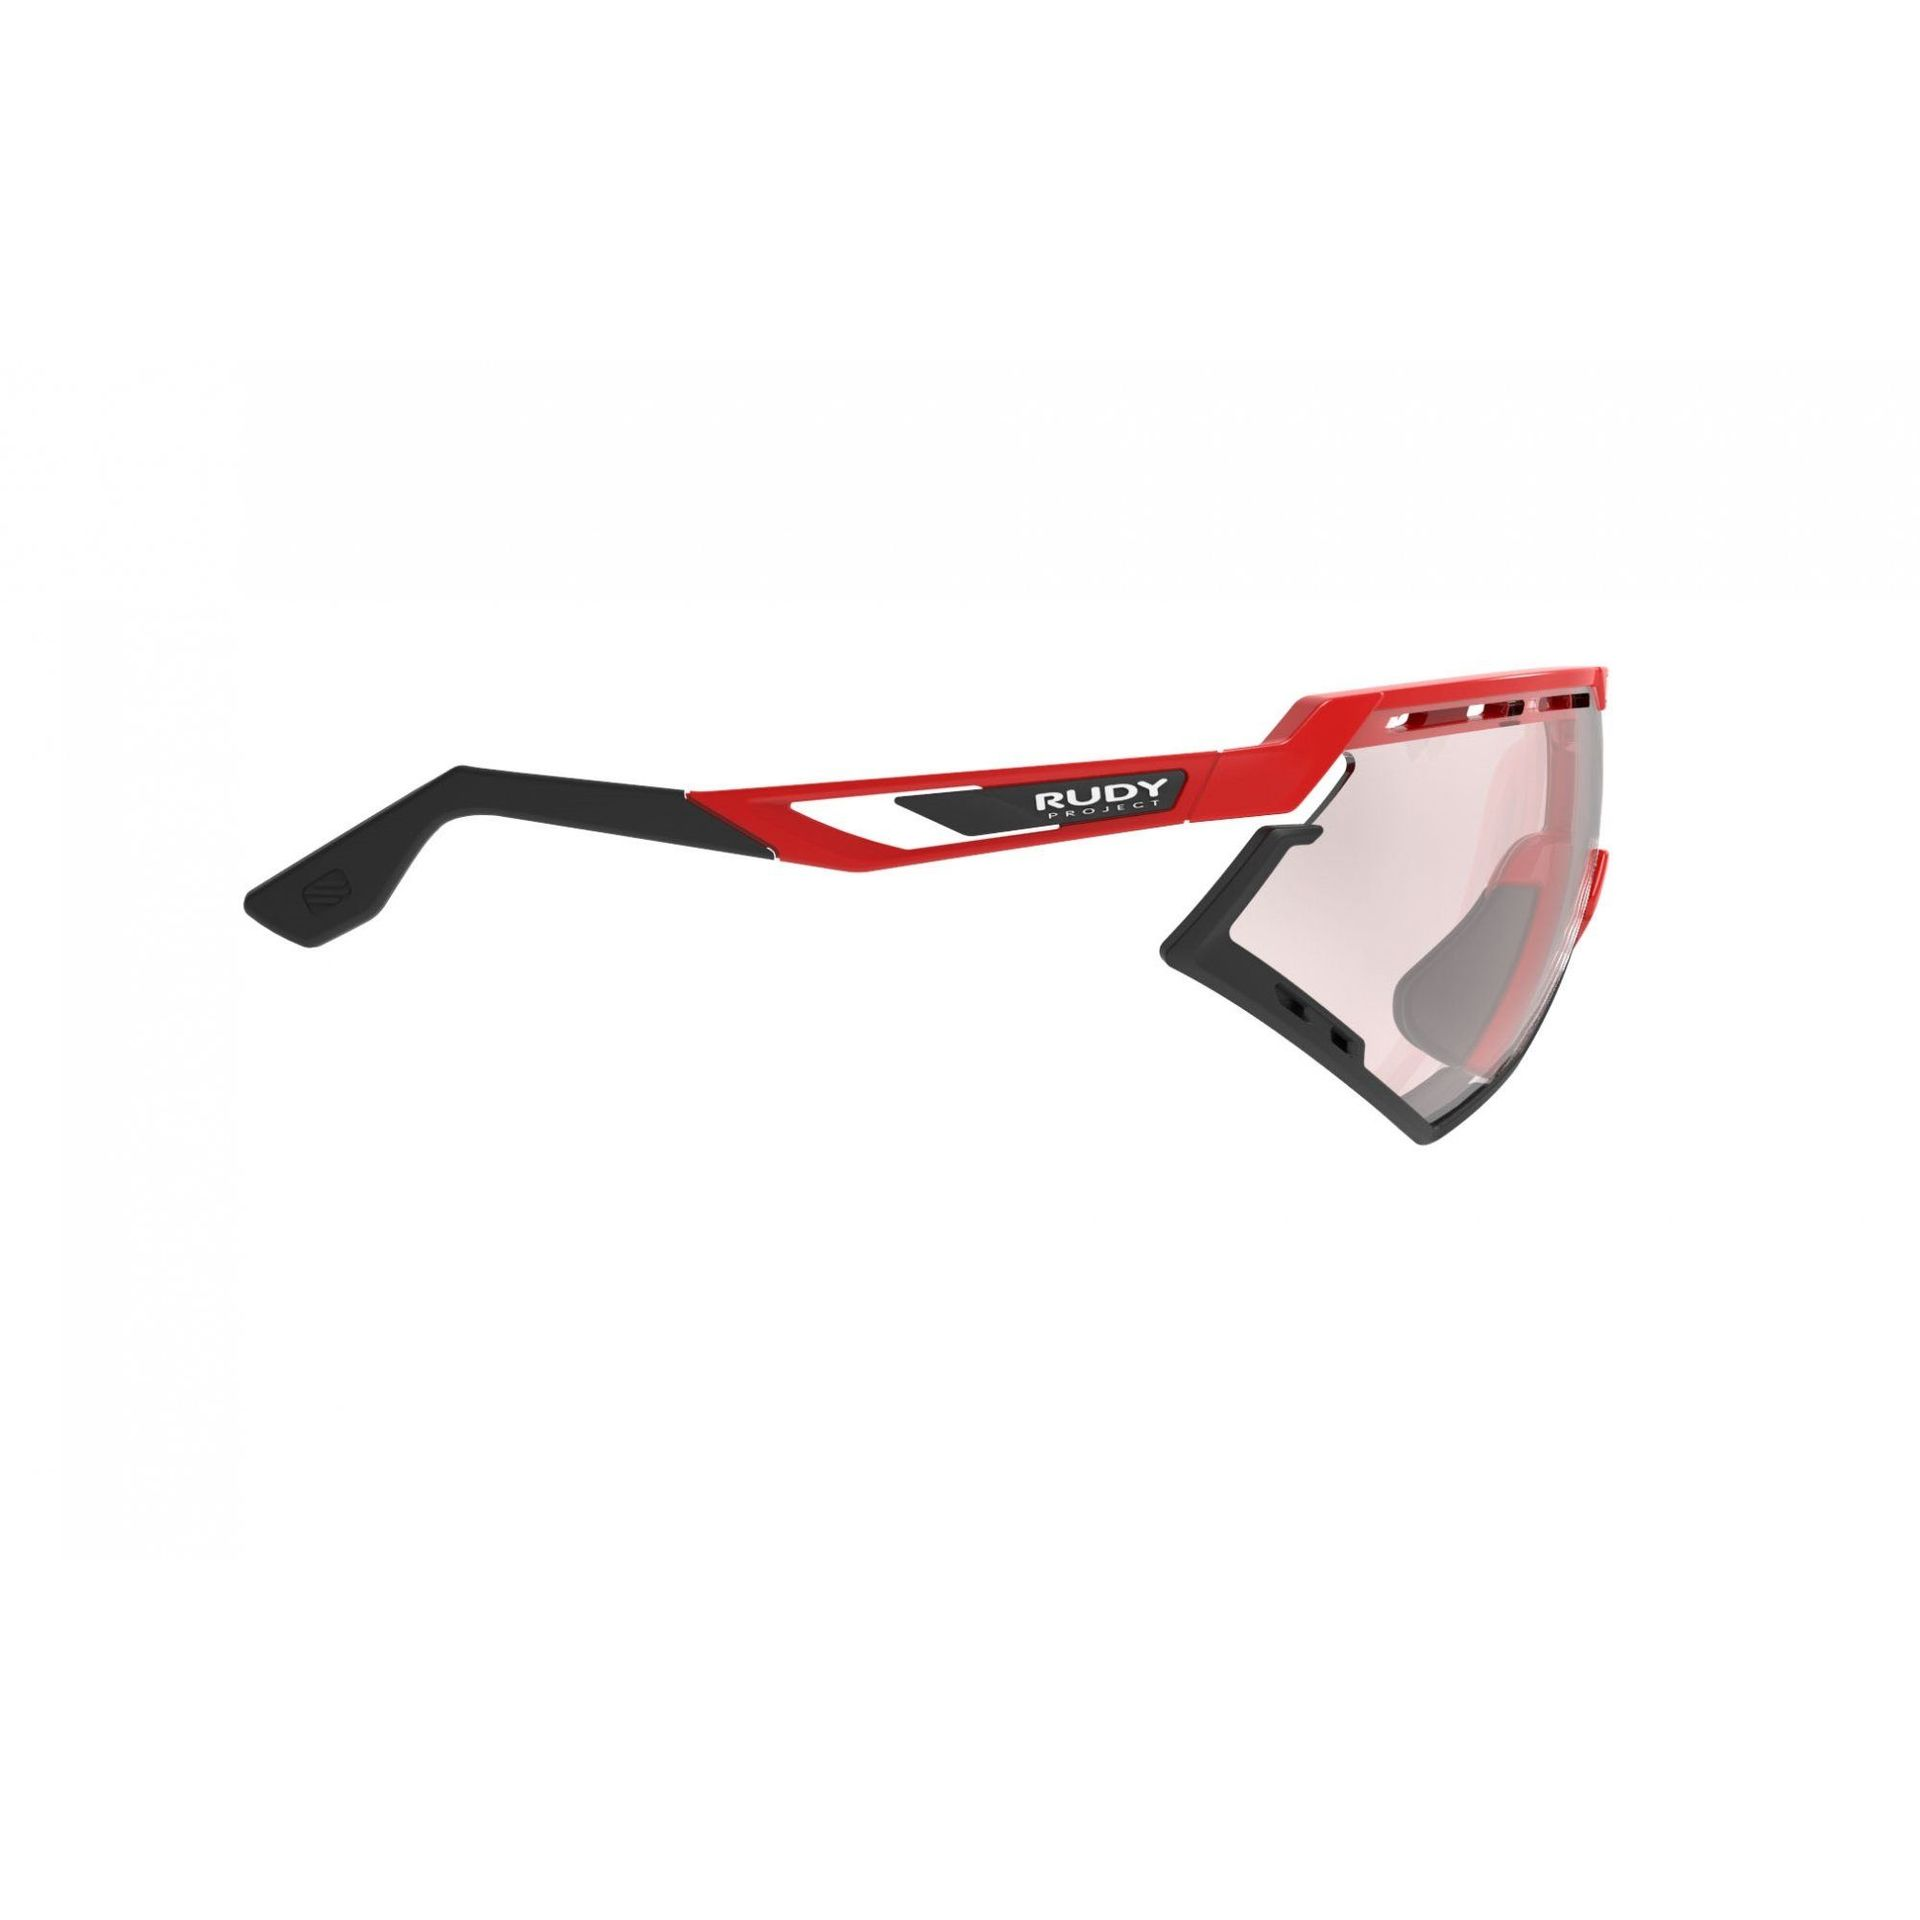 OKULARY RUDY PROJECT DEFENDER FIRE RED BLACK + IMPACTX PHOTOCHROMIC 2LASERRED SP528945 4